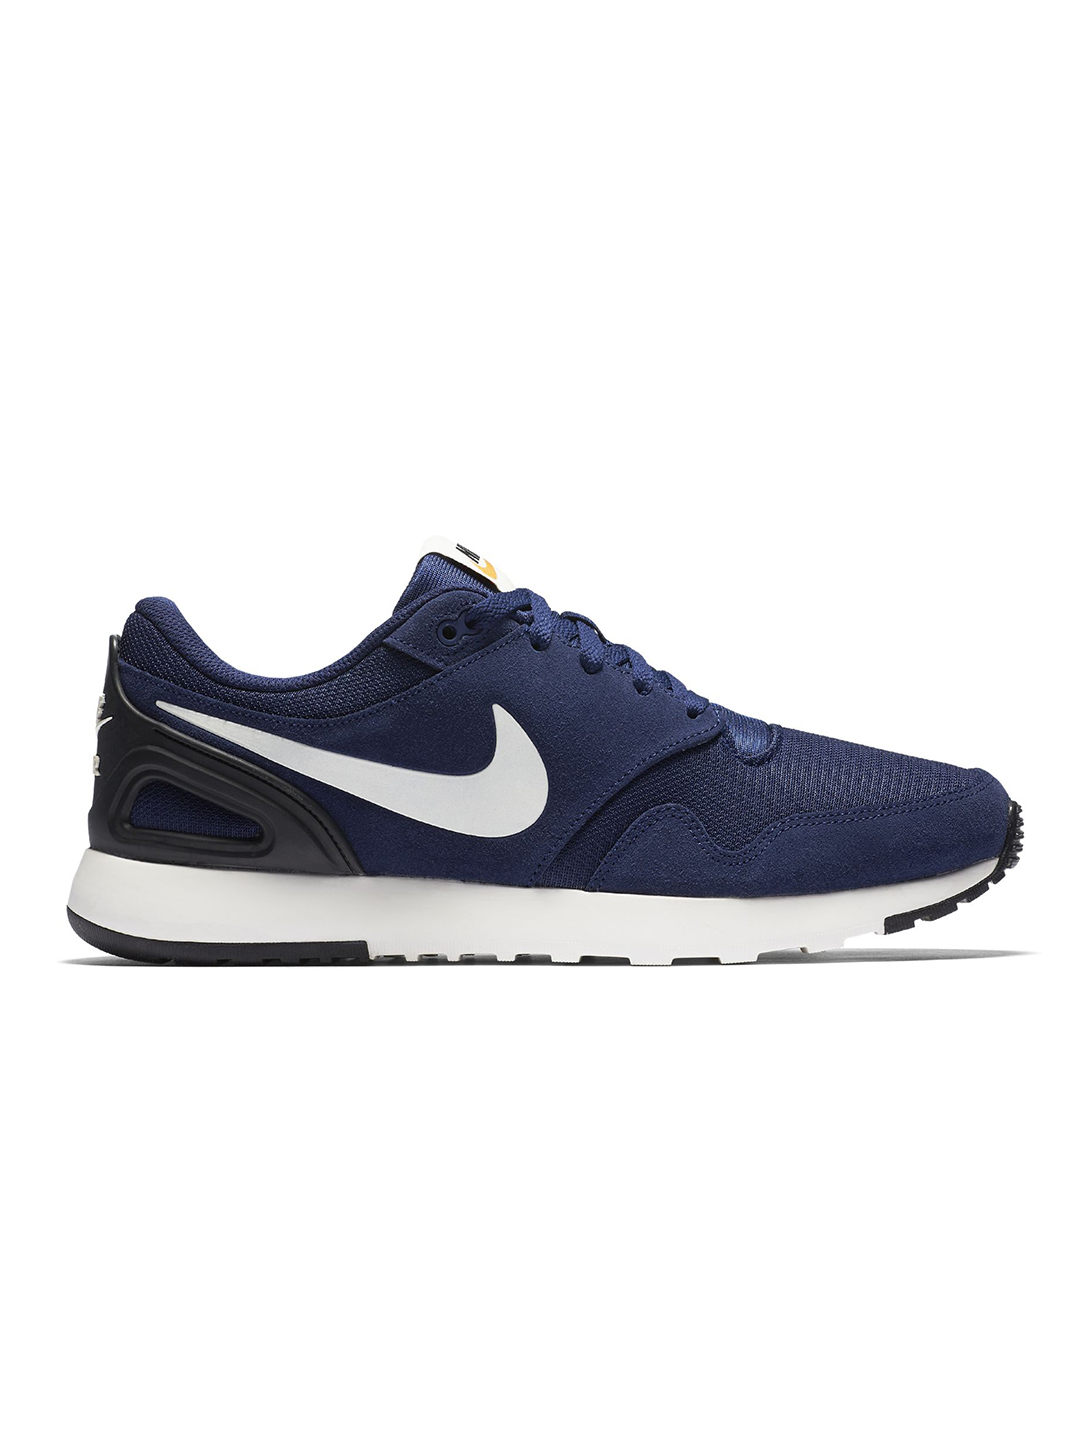 nike black and blue casual shoes